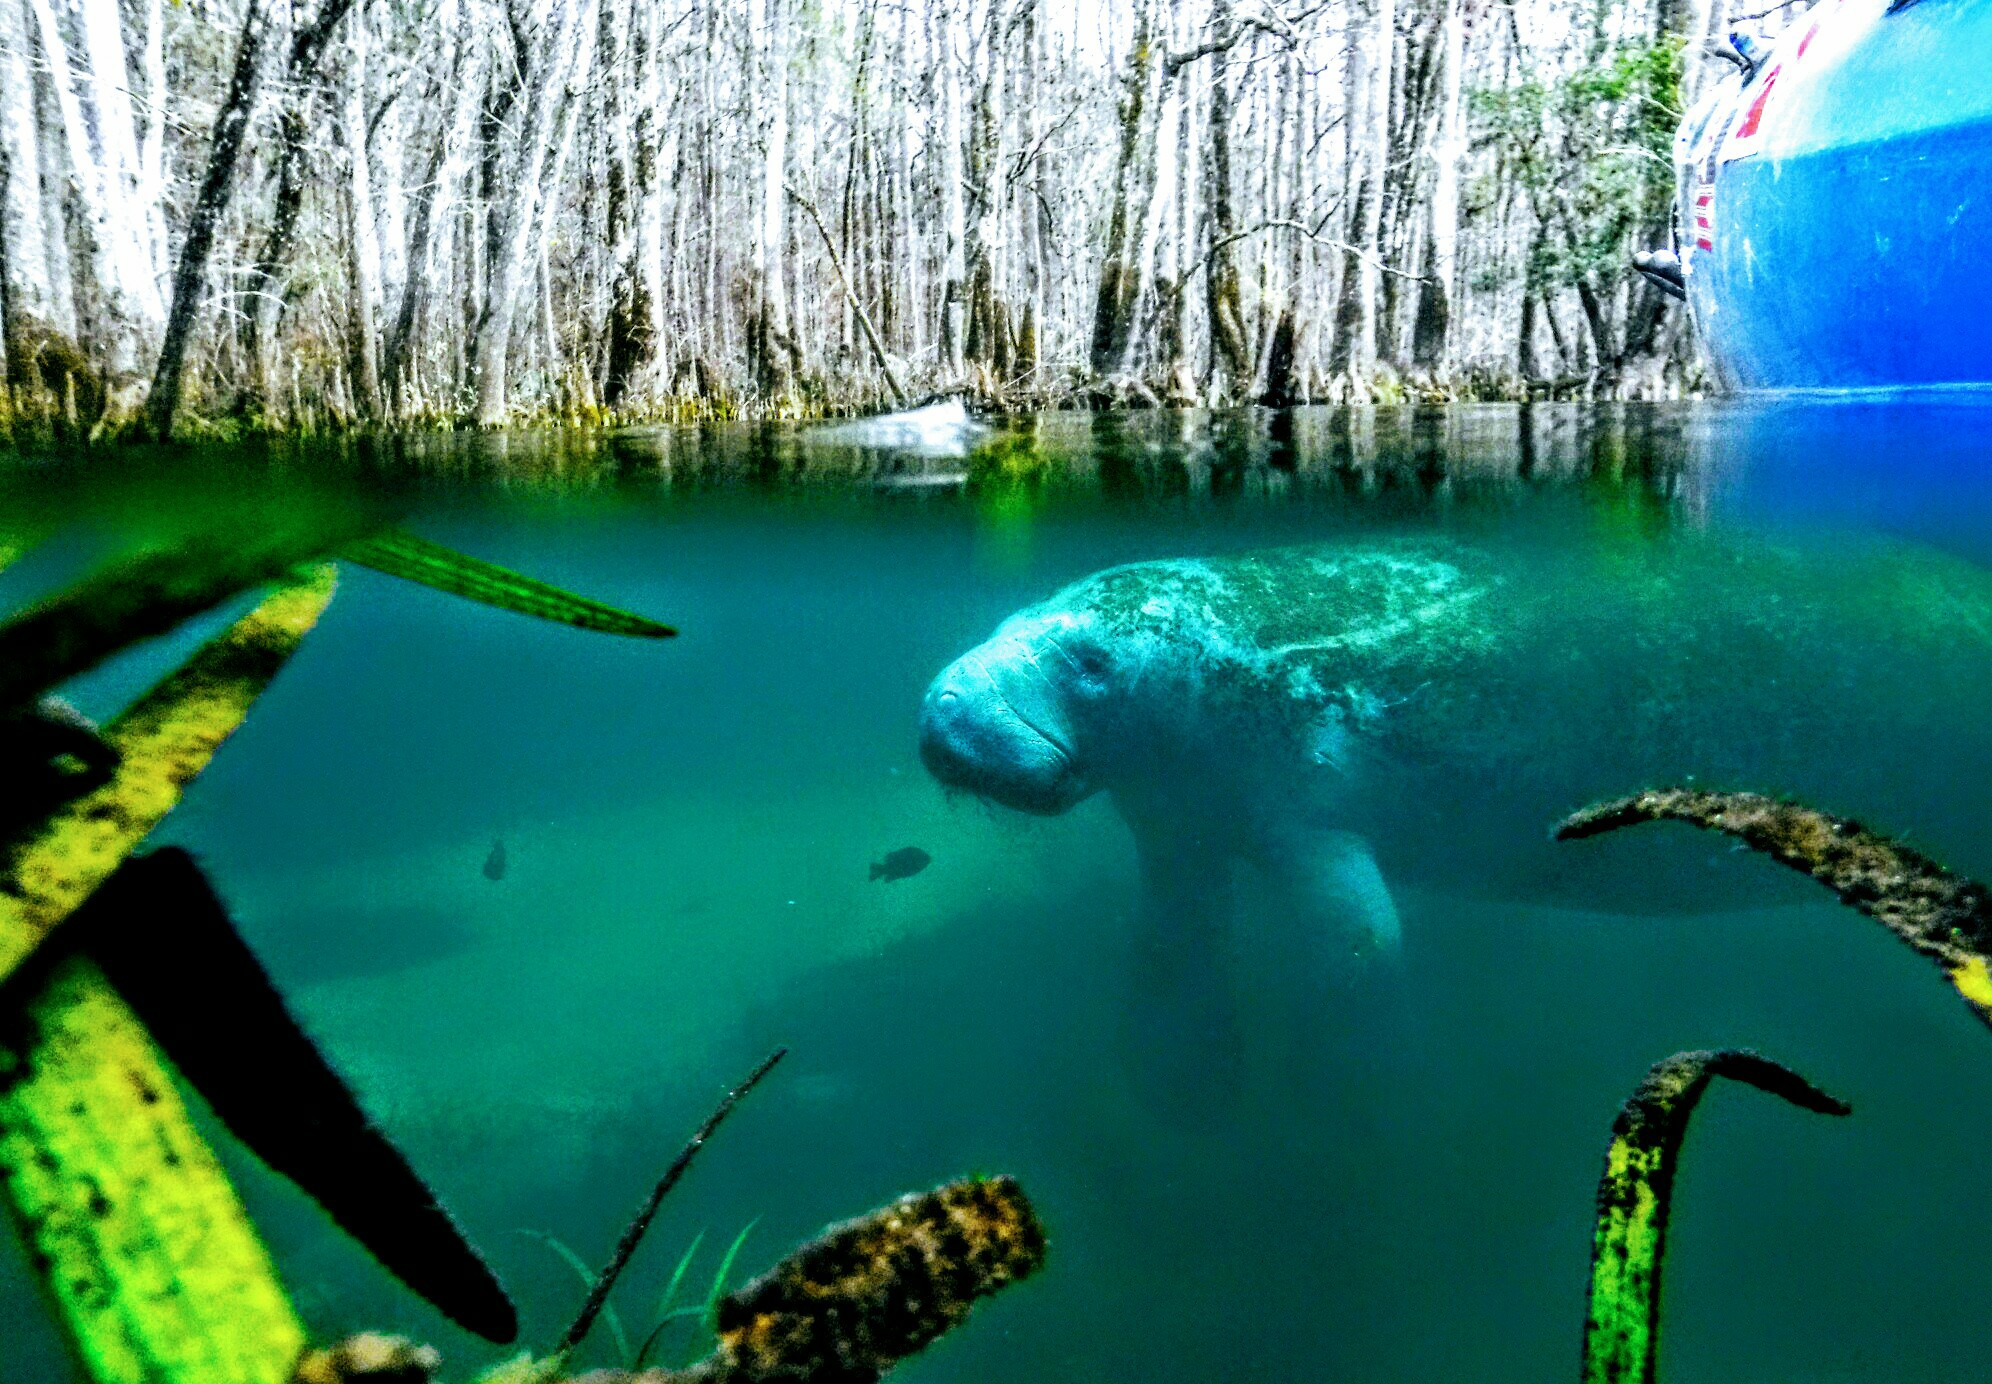 1992x1384 Manatee, Manatee Springs, in Manatee Springs to Fowlers Bluff, Suwannee River, by Scotti Jay, for WWALS.net, 24 February 2018